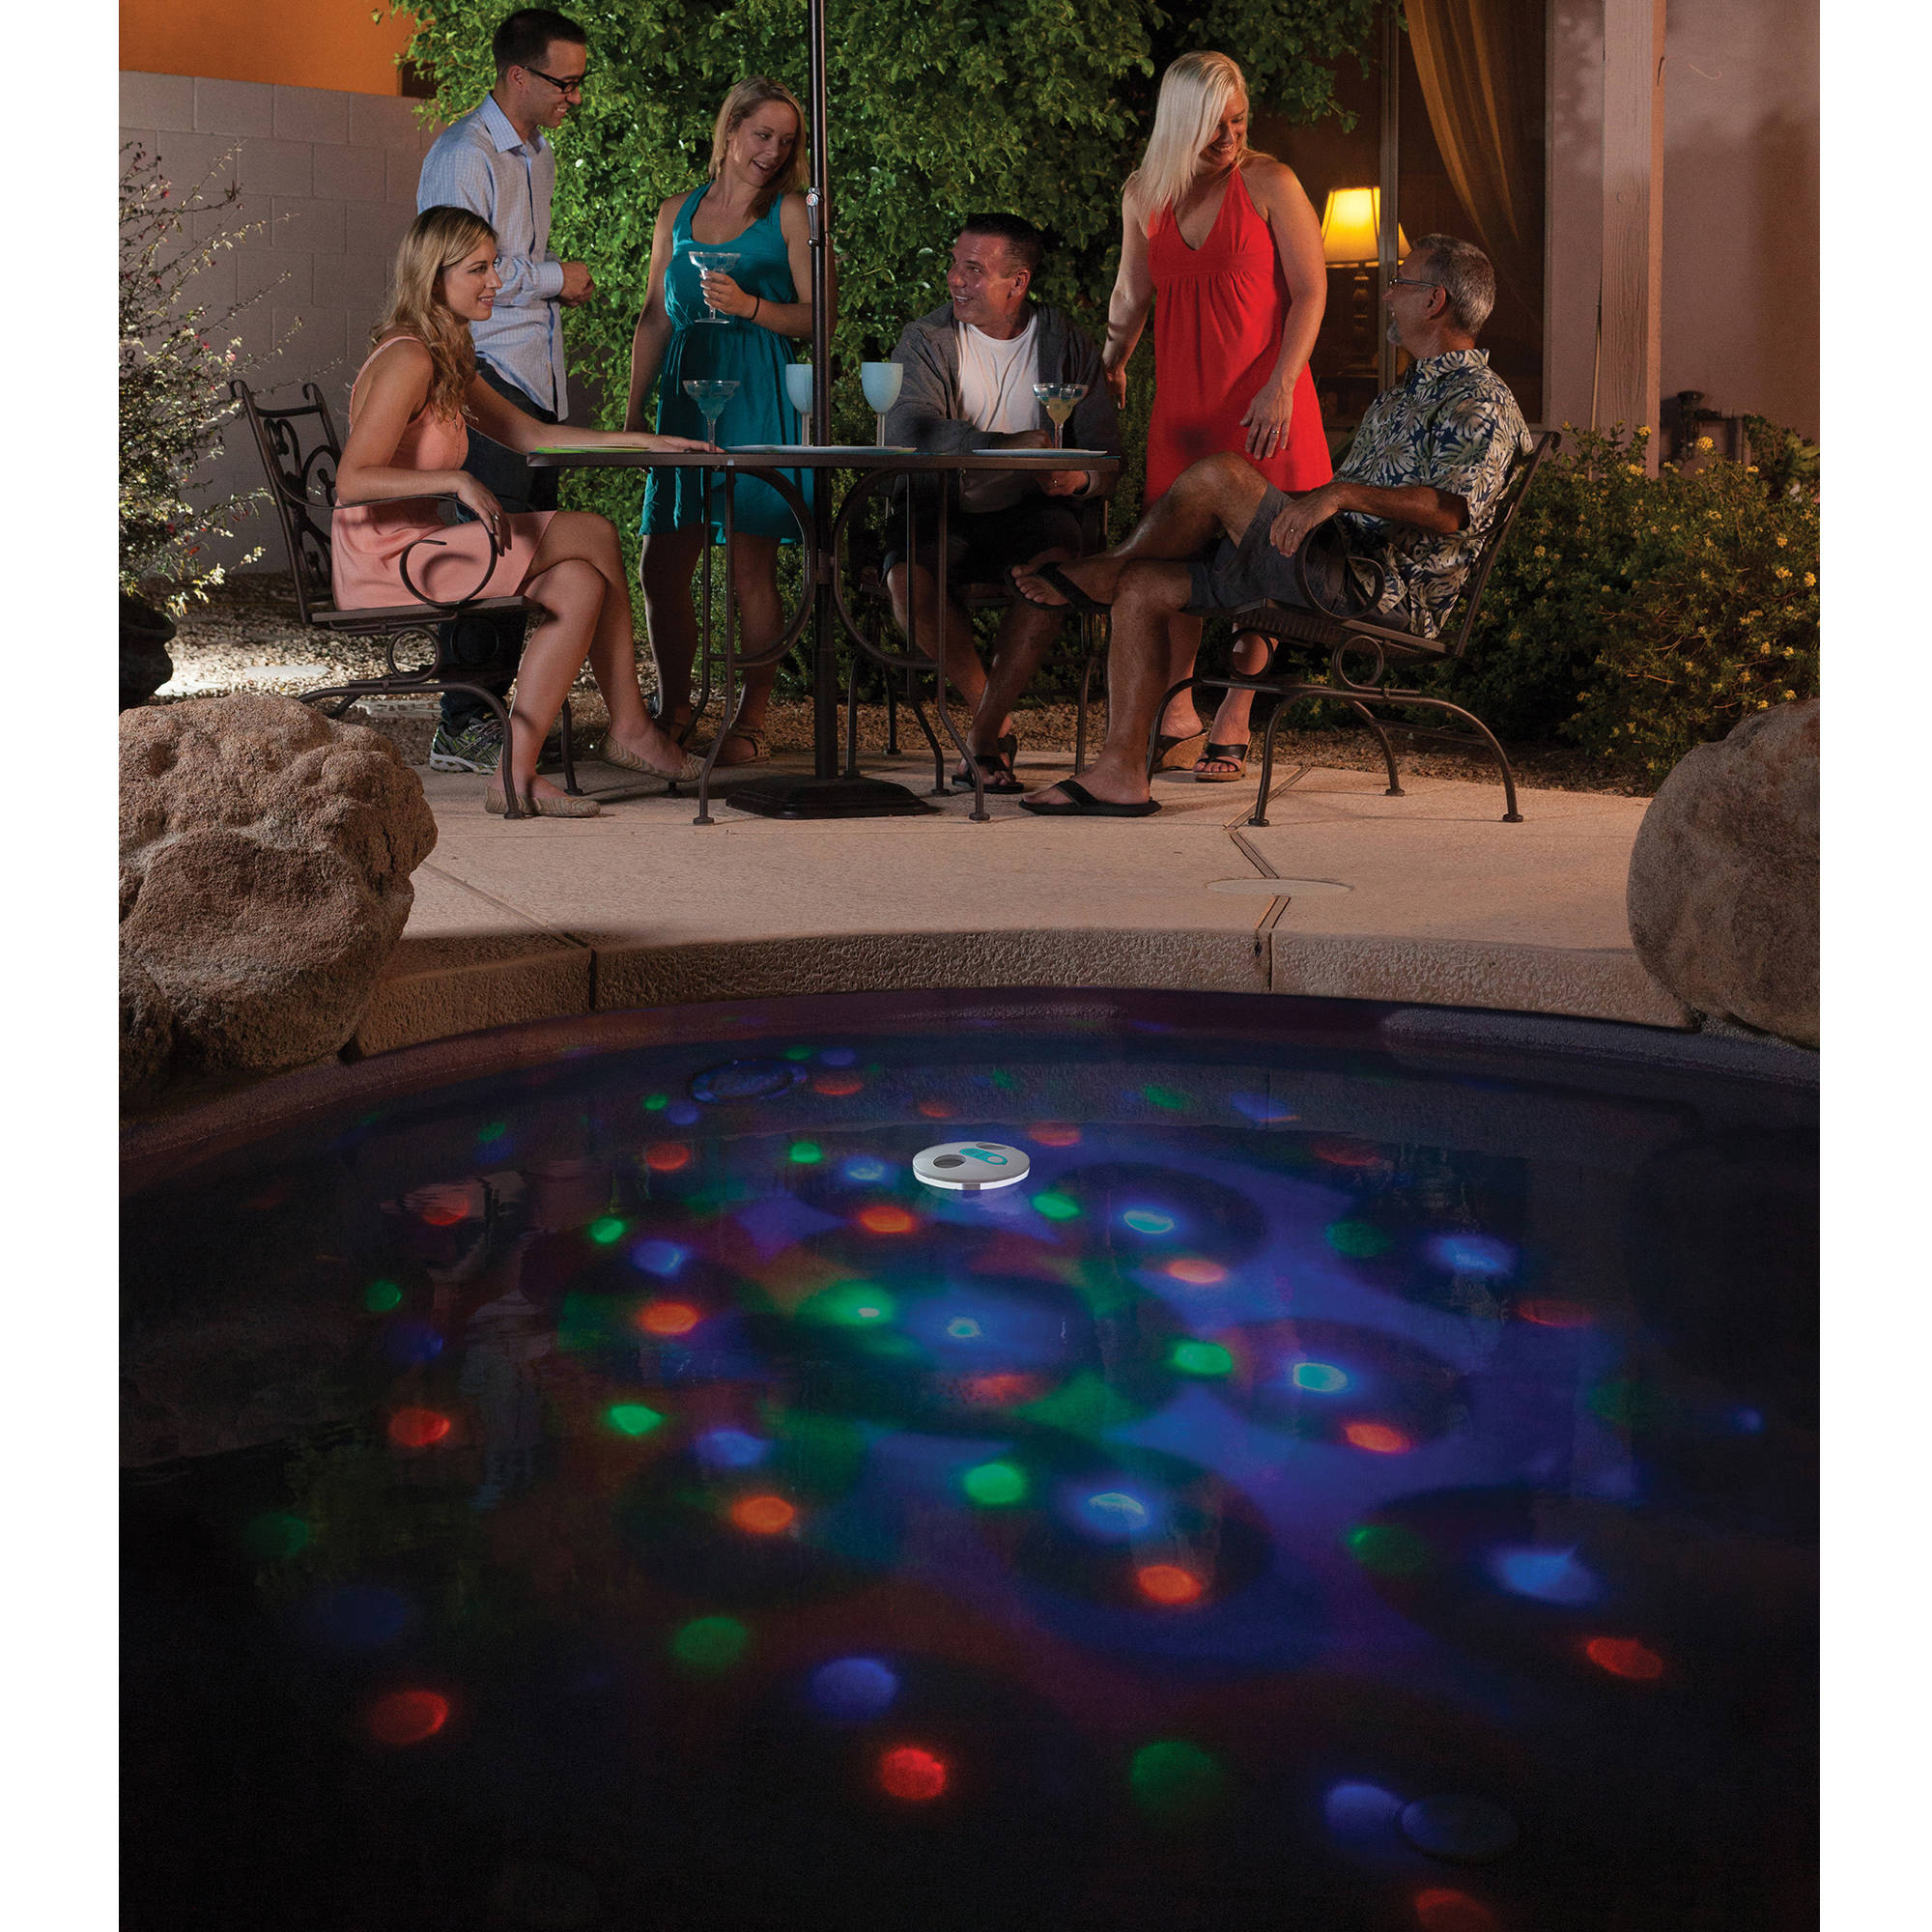 Solar powered swimming pool floating light solar floating light - Swim Time Solar Underwater Light Show Floating Pool Light Walmart Com